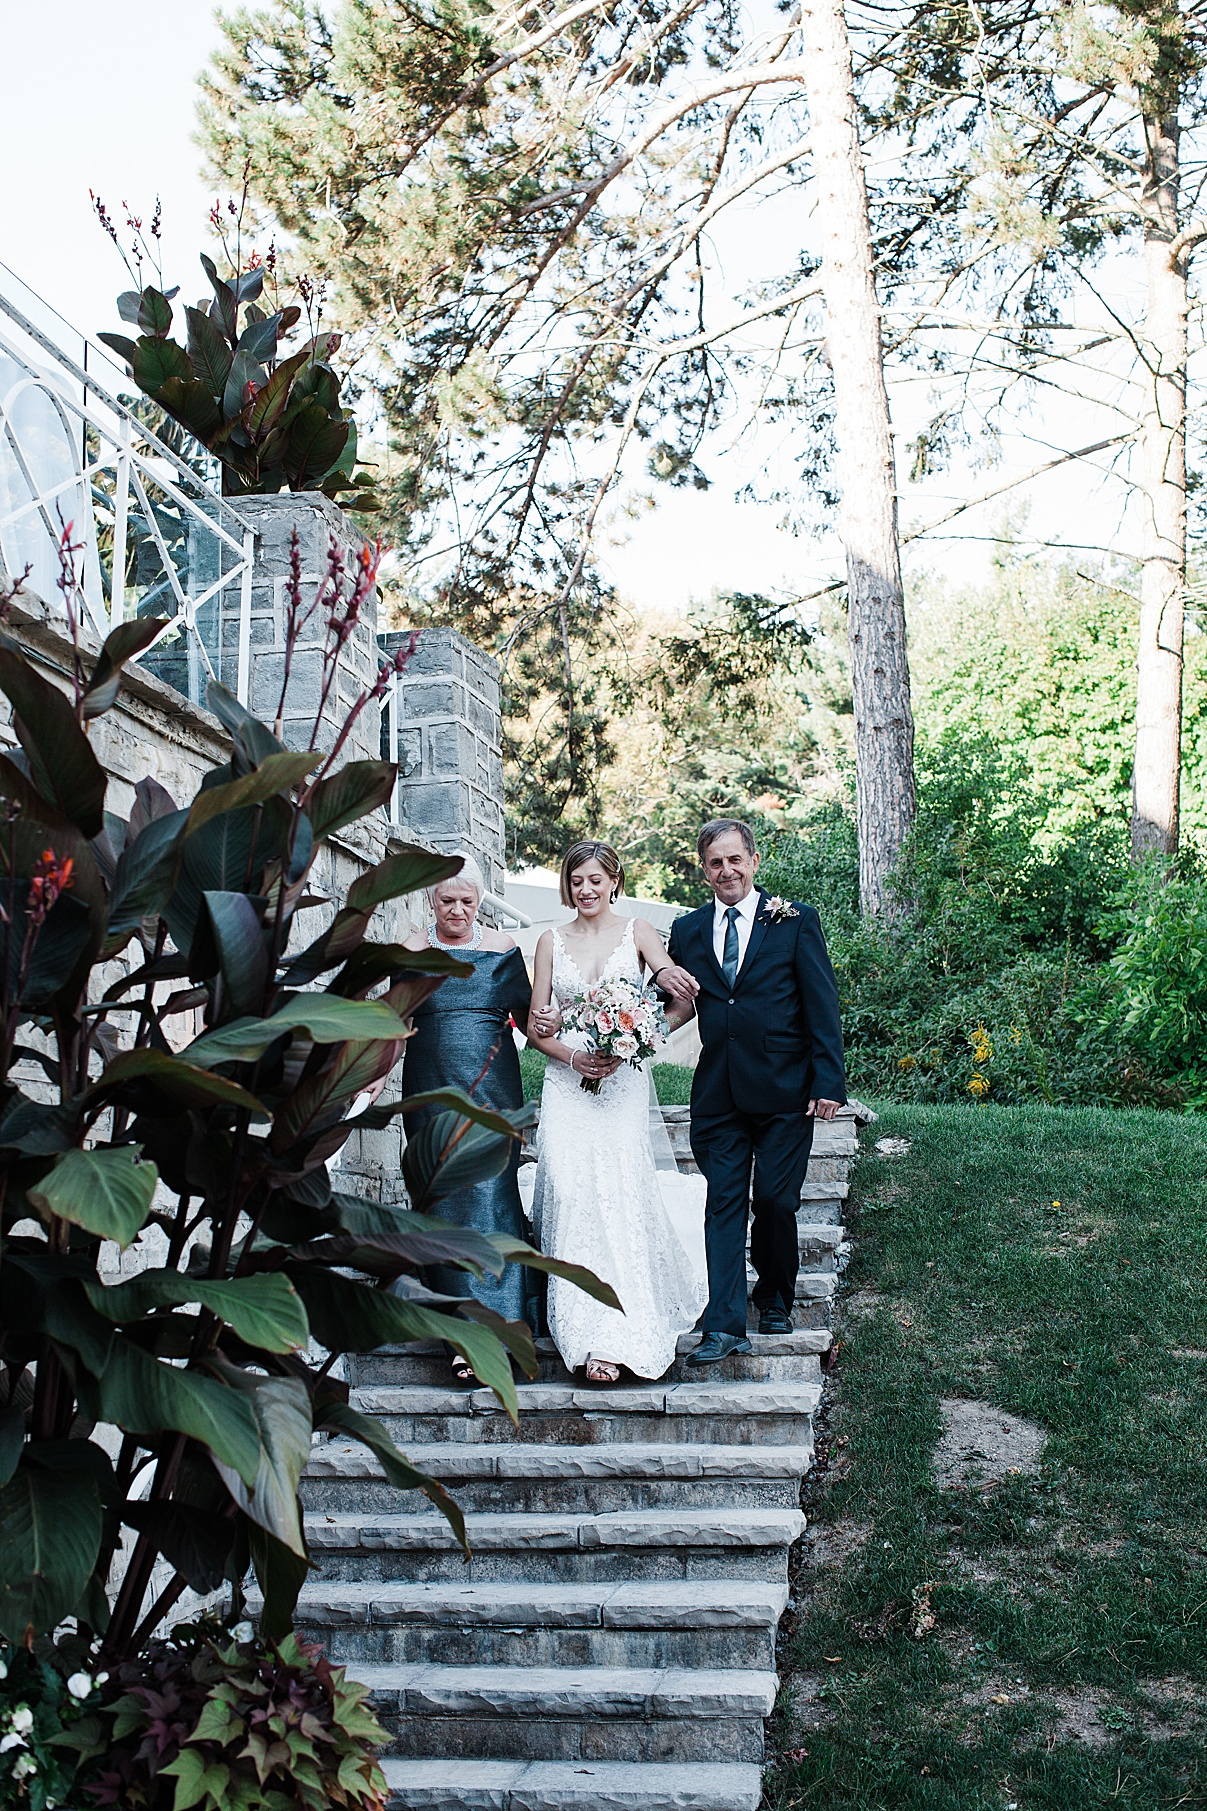 Bride walking down steps with parents| Harding Waterfront Estate Wedding| Ontario wedding photographer| Toronto wedding photographer| 3 Photography | 3photography.ca